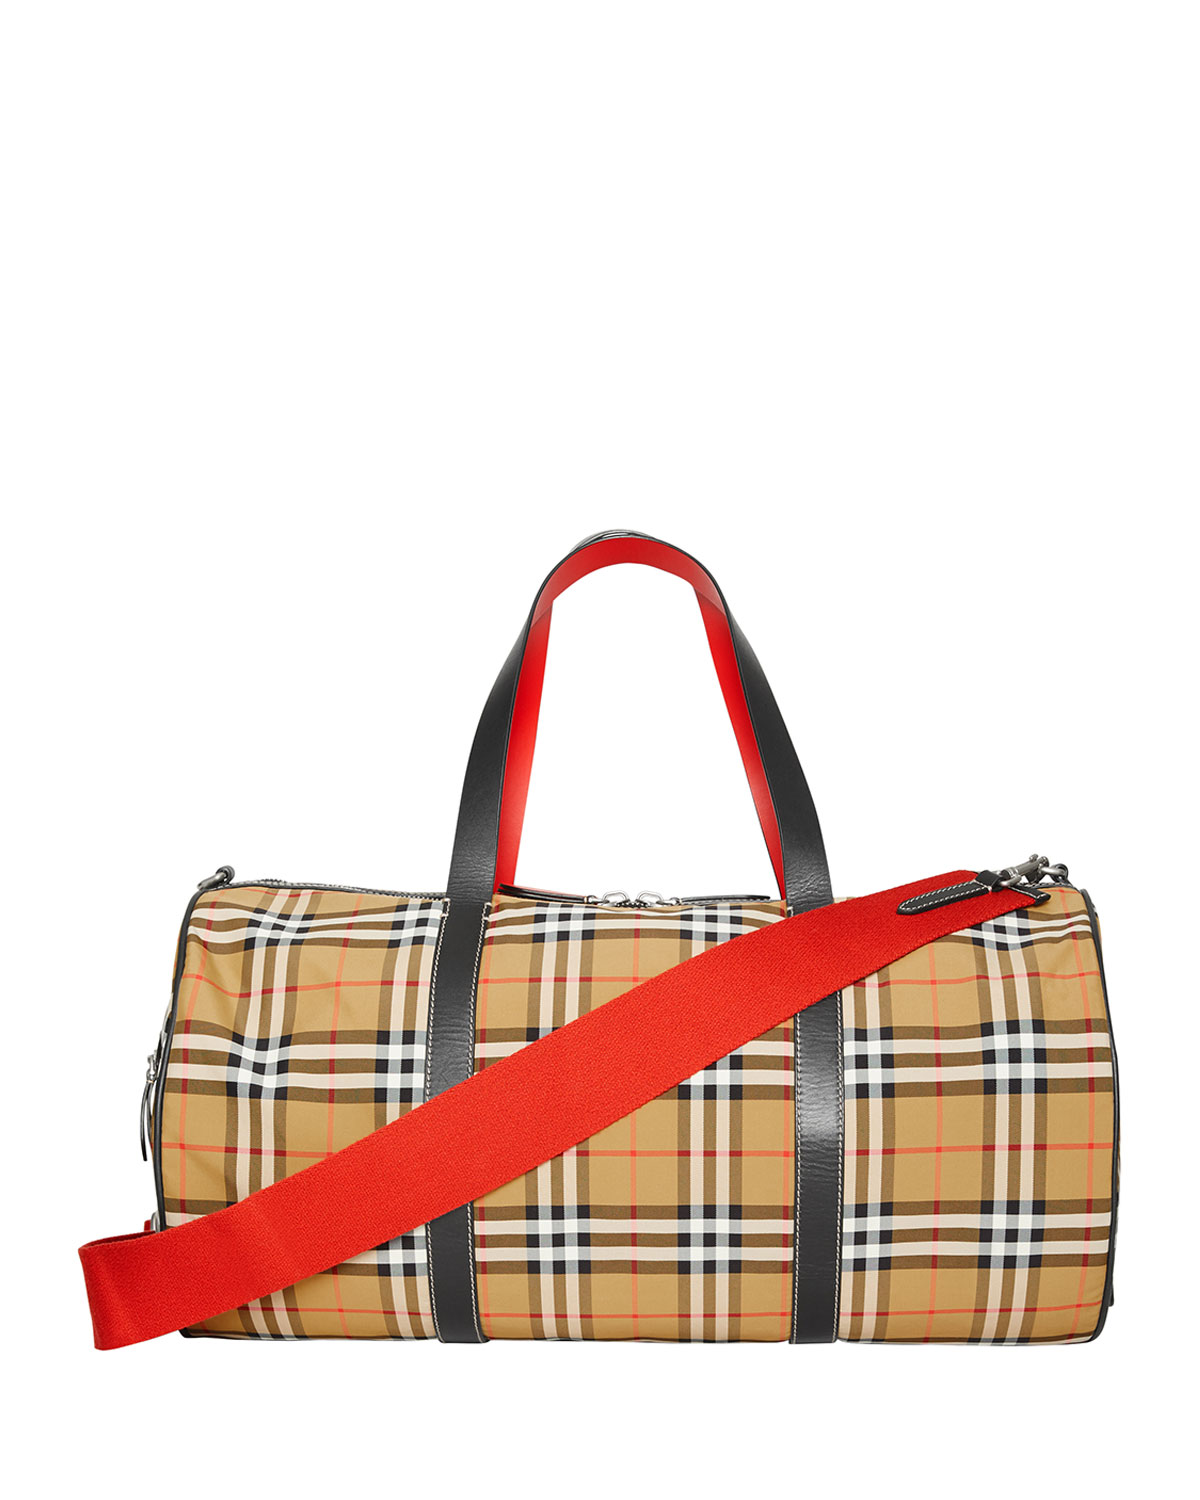 1319486e3fea Burberry Large Vintage Check And Leather Barrel Bag In Red